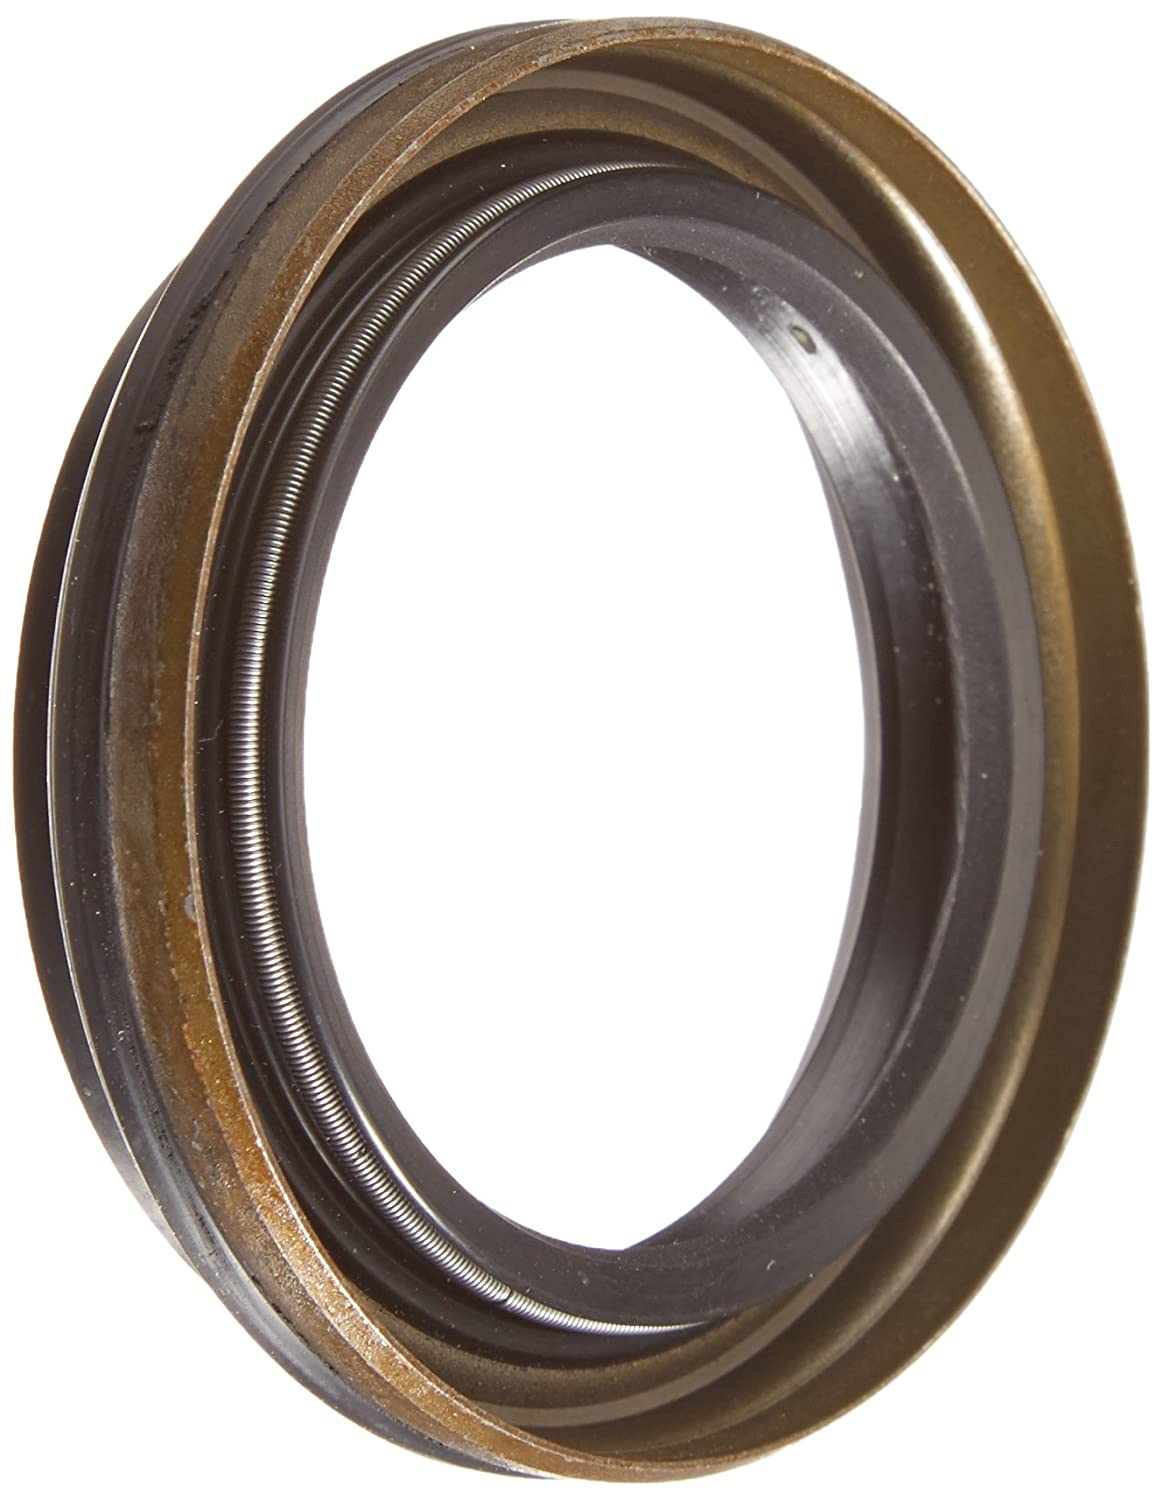 ATP Automotive NO-51 Automatic Transmission Seal Drive Axle